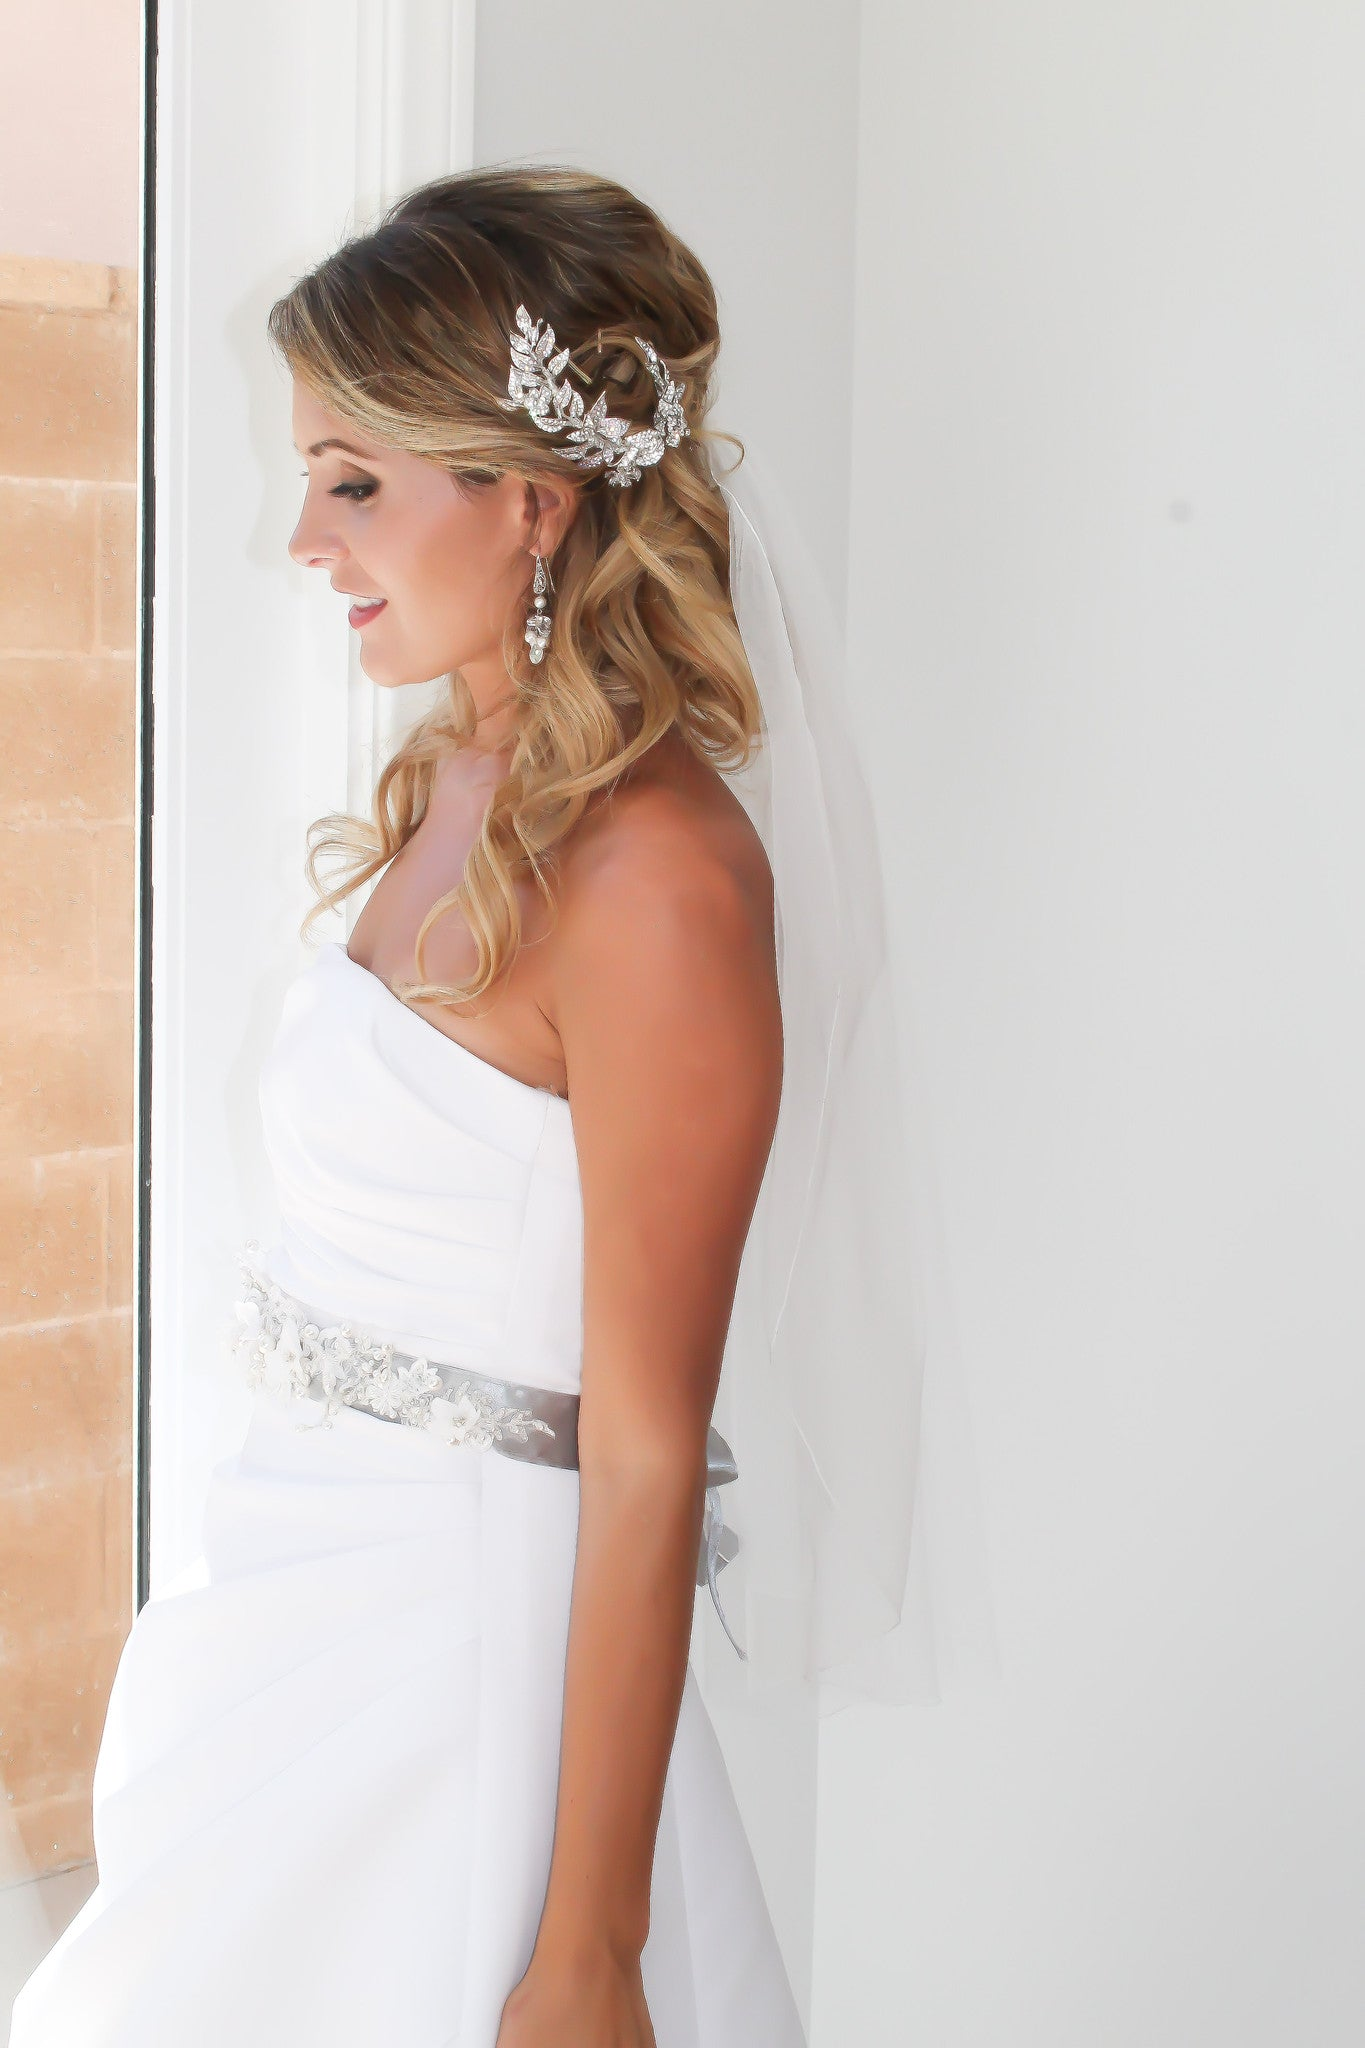 Wedding Headpiece Handcrafted With Swarovski Crystals - Bride Glamor